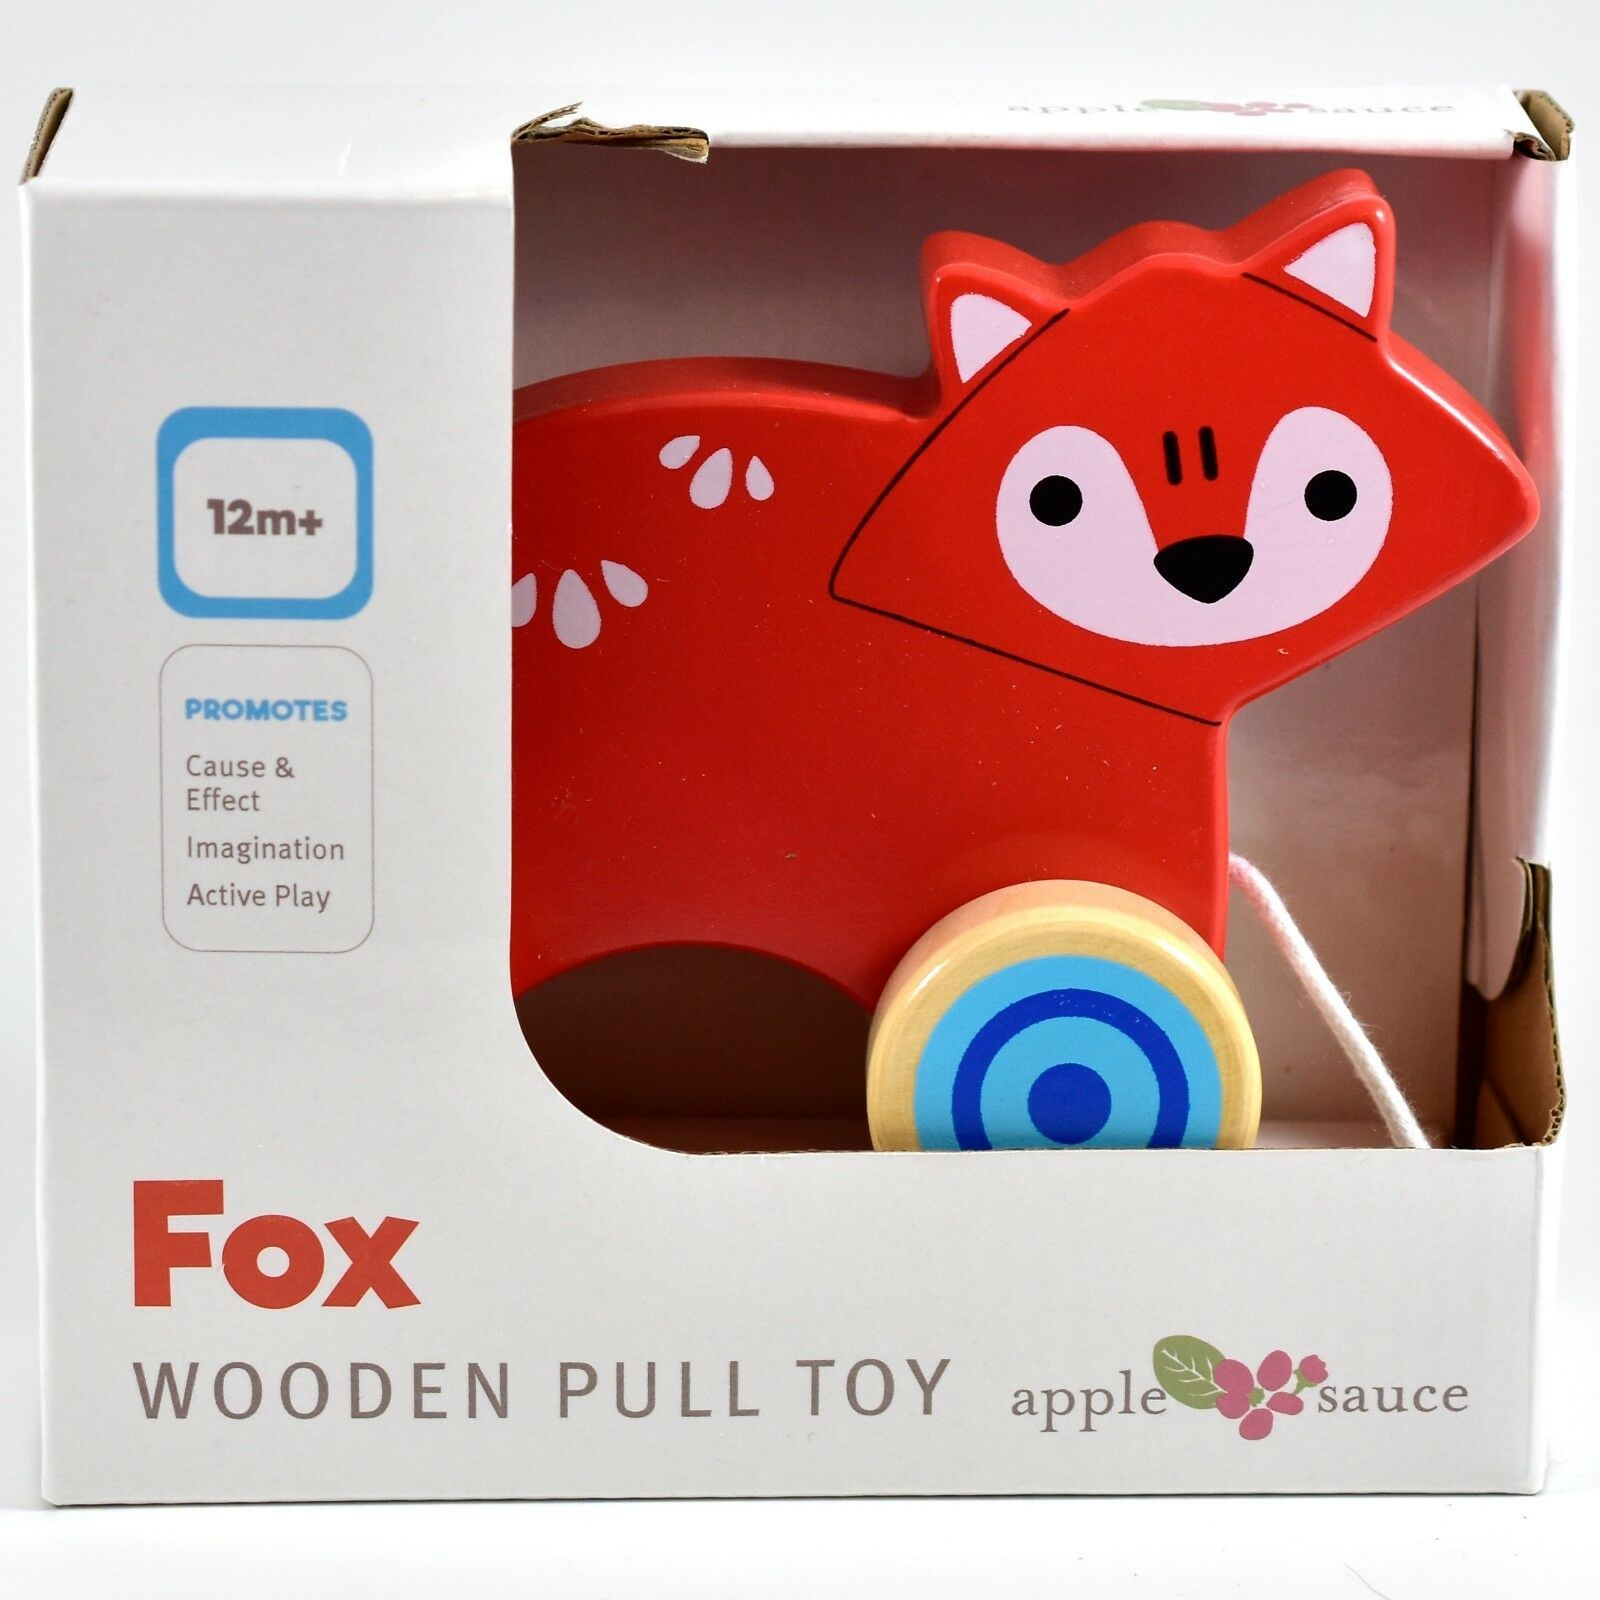 Applesauce Fox Baby Wooden Pull Toy for Toddlers Children Ages 12+ Month